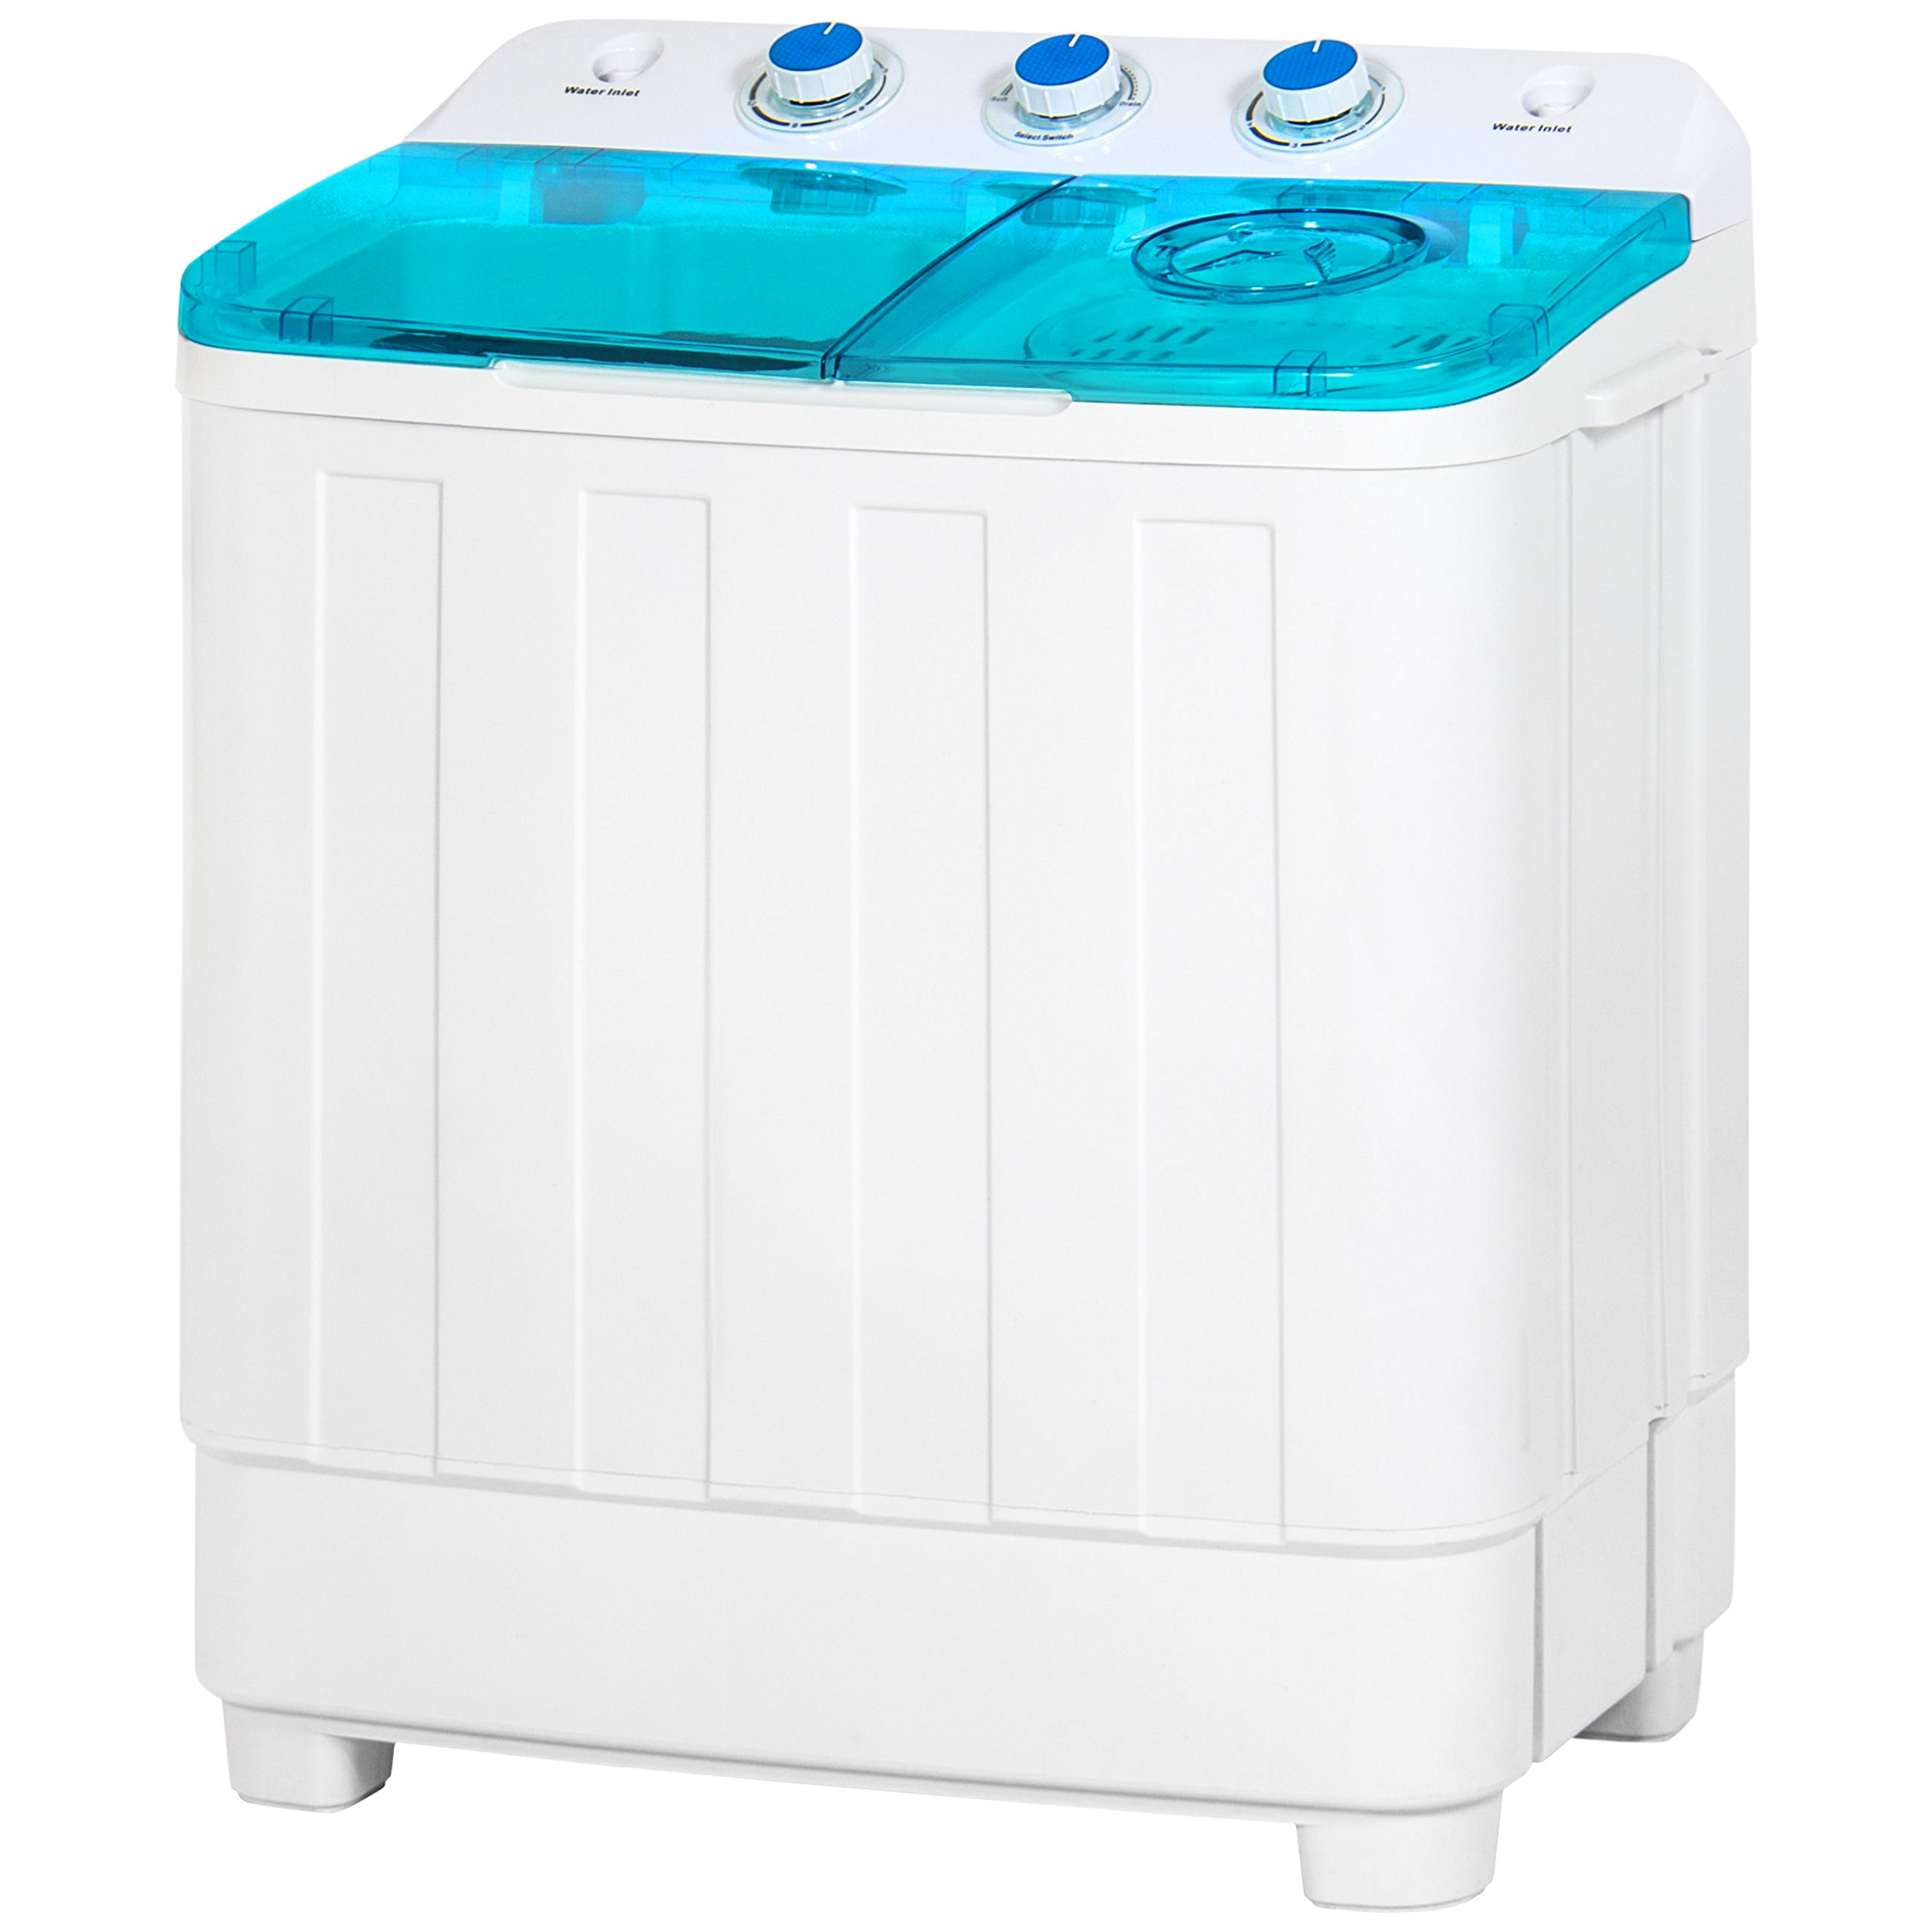 Best Choice Products Mini Twin Tub Portable Compact Washing Machine Spin Dry Cycle- 12lbs Capacity Washer by Best Choice Products